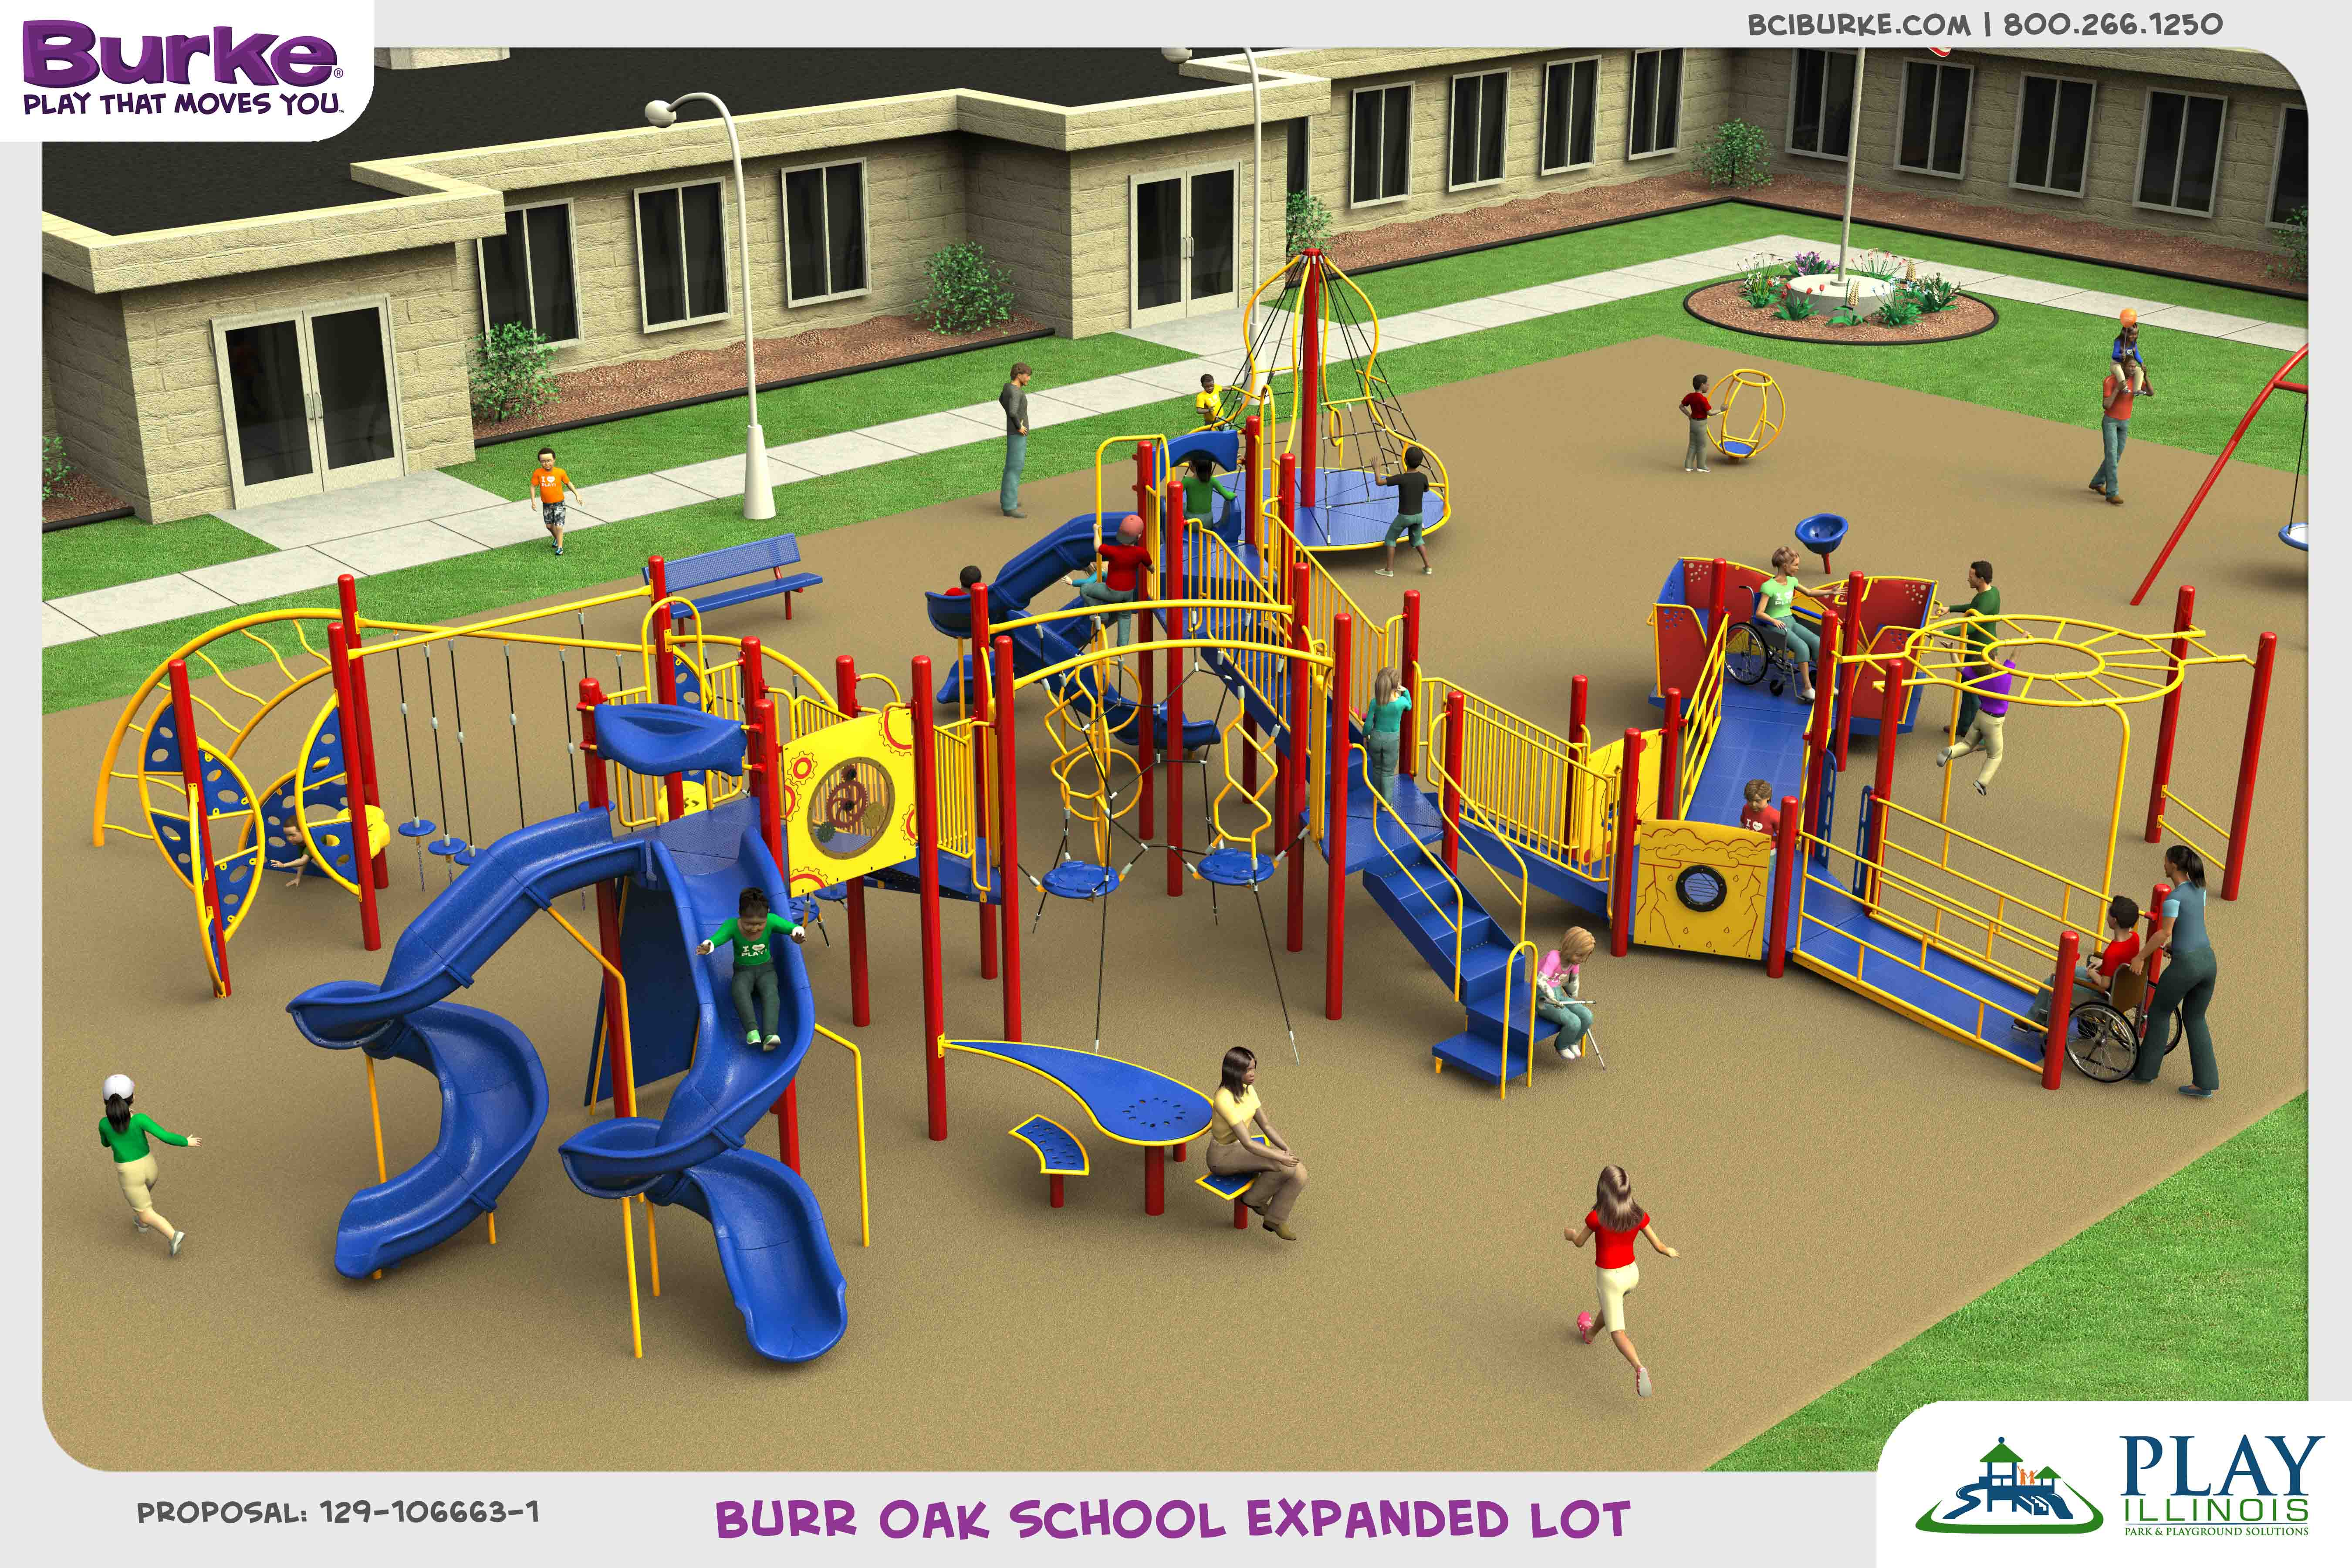 Burroakelementary dream build play experience accessible playgrounds